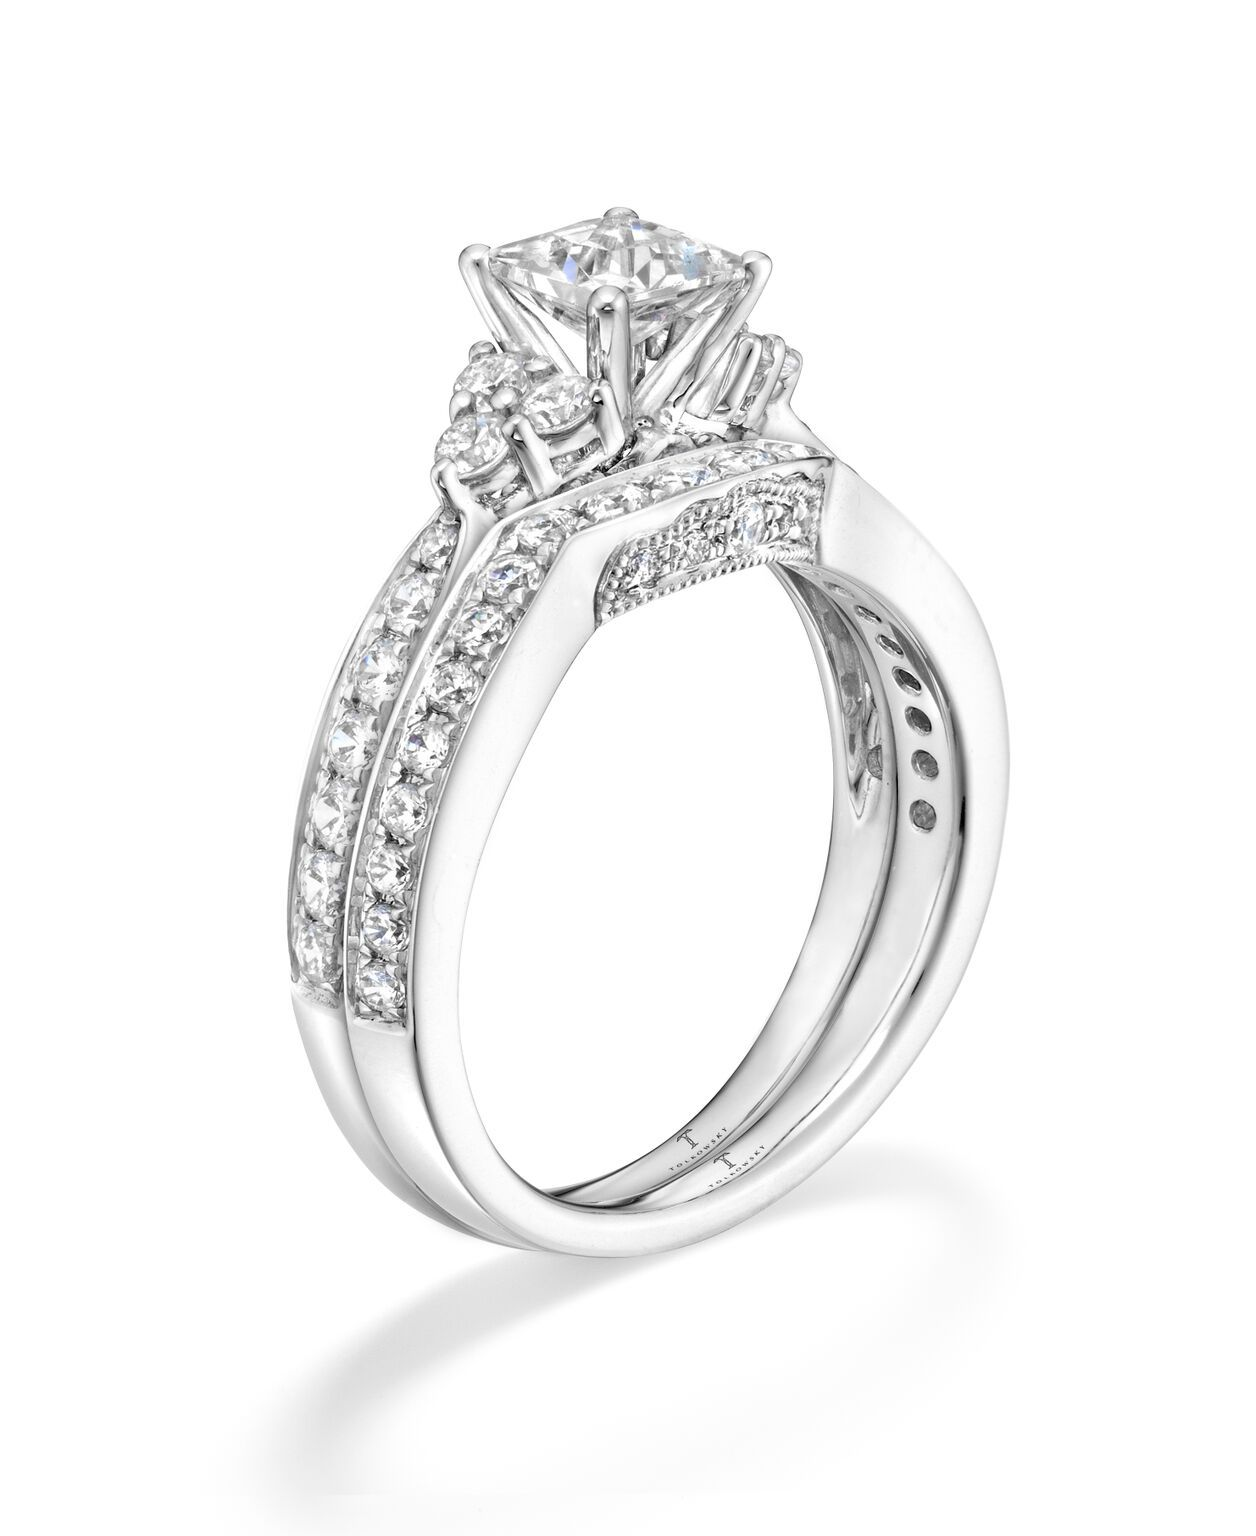 tolkowsky diamond bridal set in 14k white gold available in the us through kay jewelers - Kays Jewelry Wedding Rings